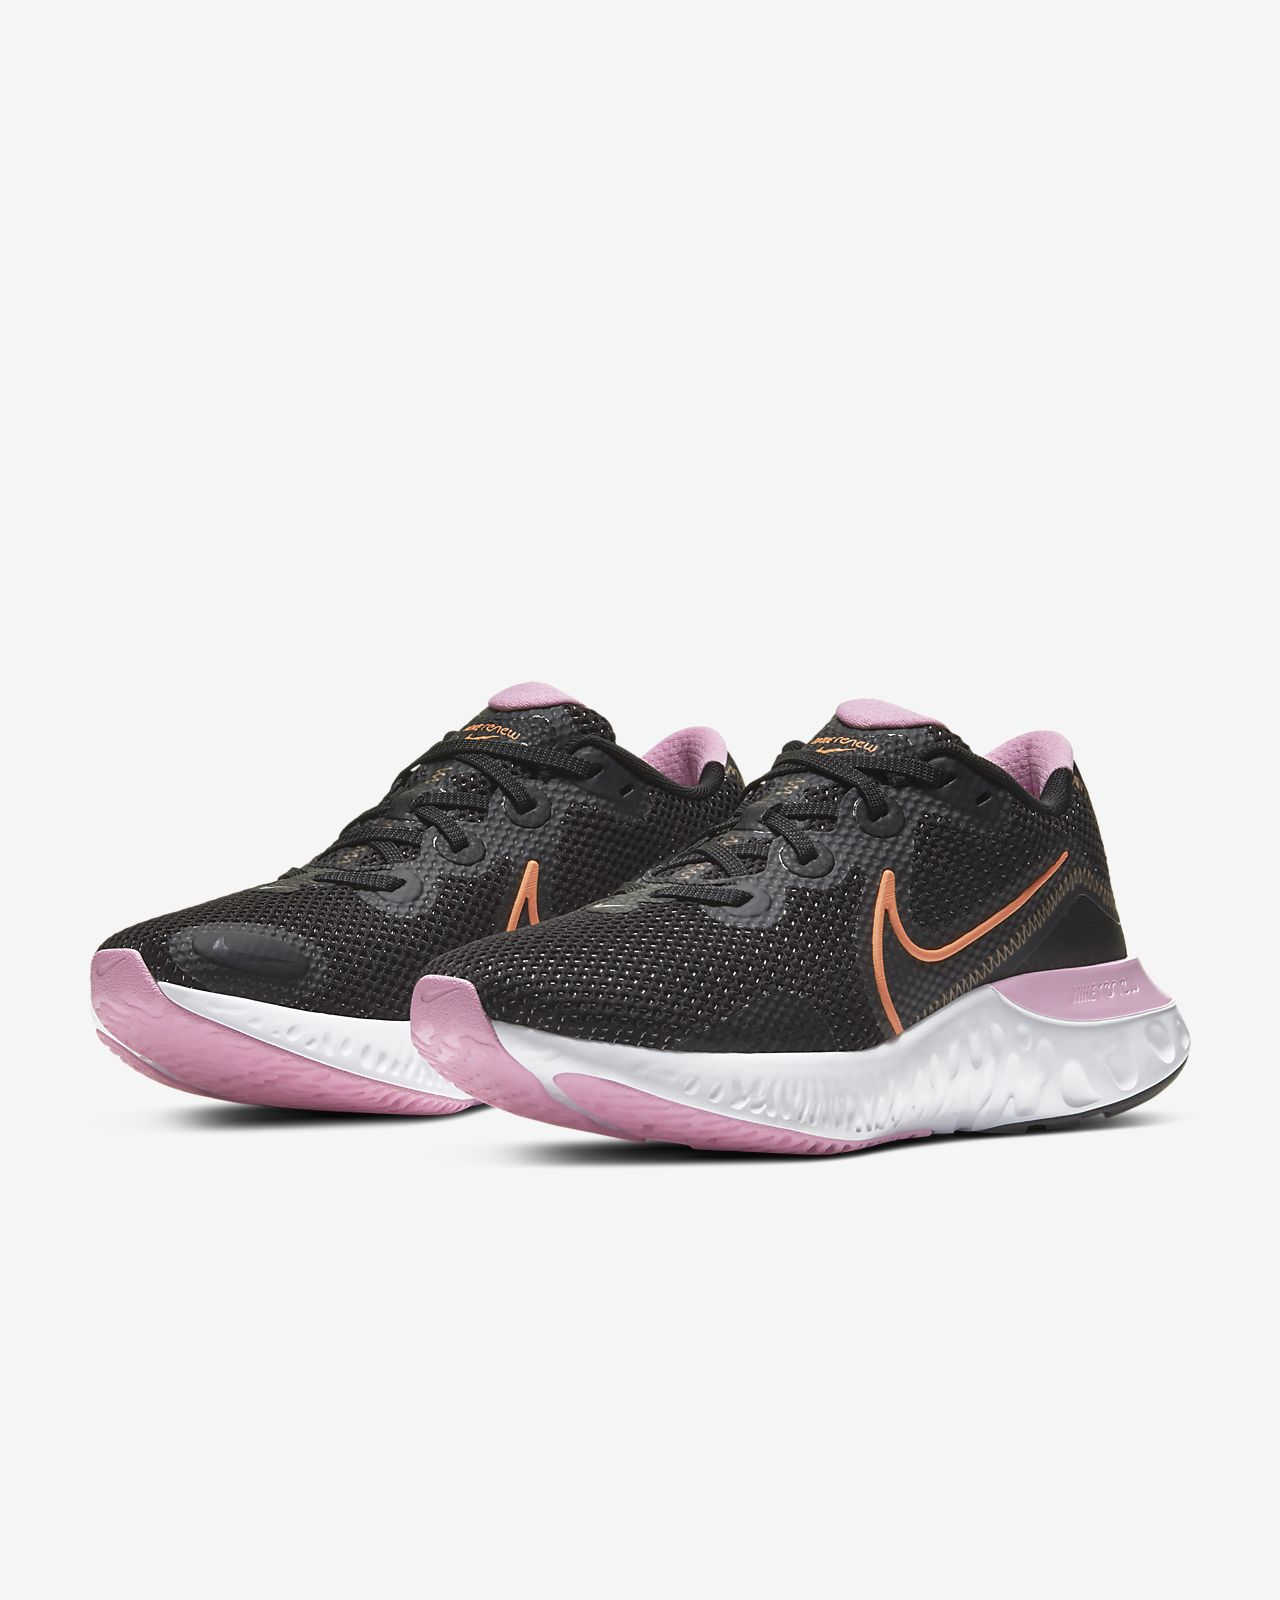 nike womens running shoes black and pink